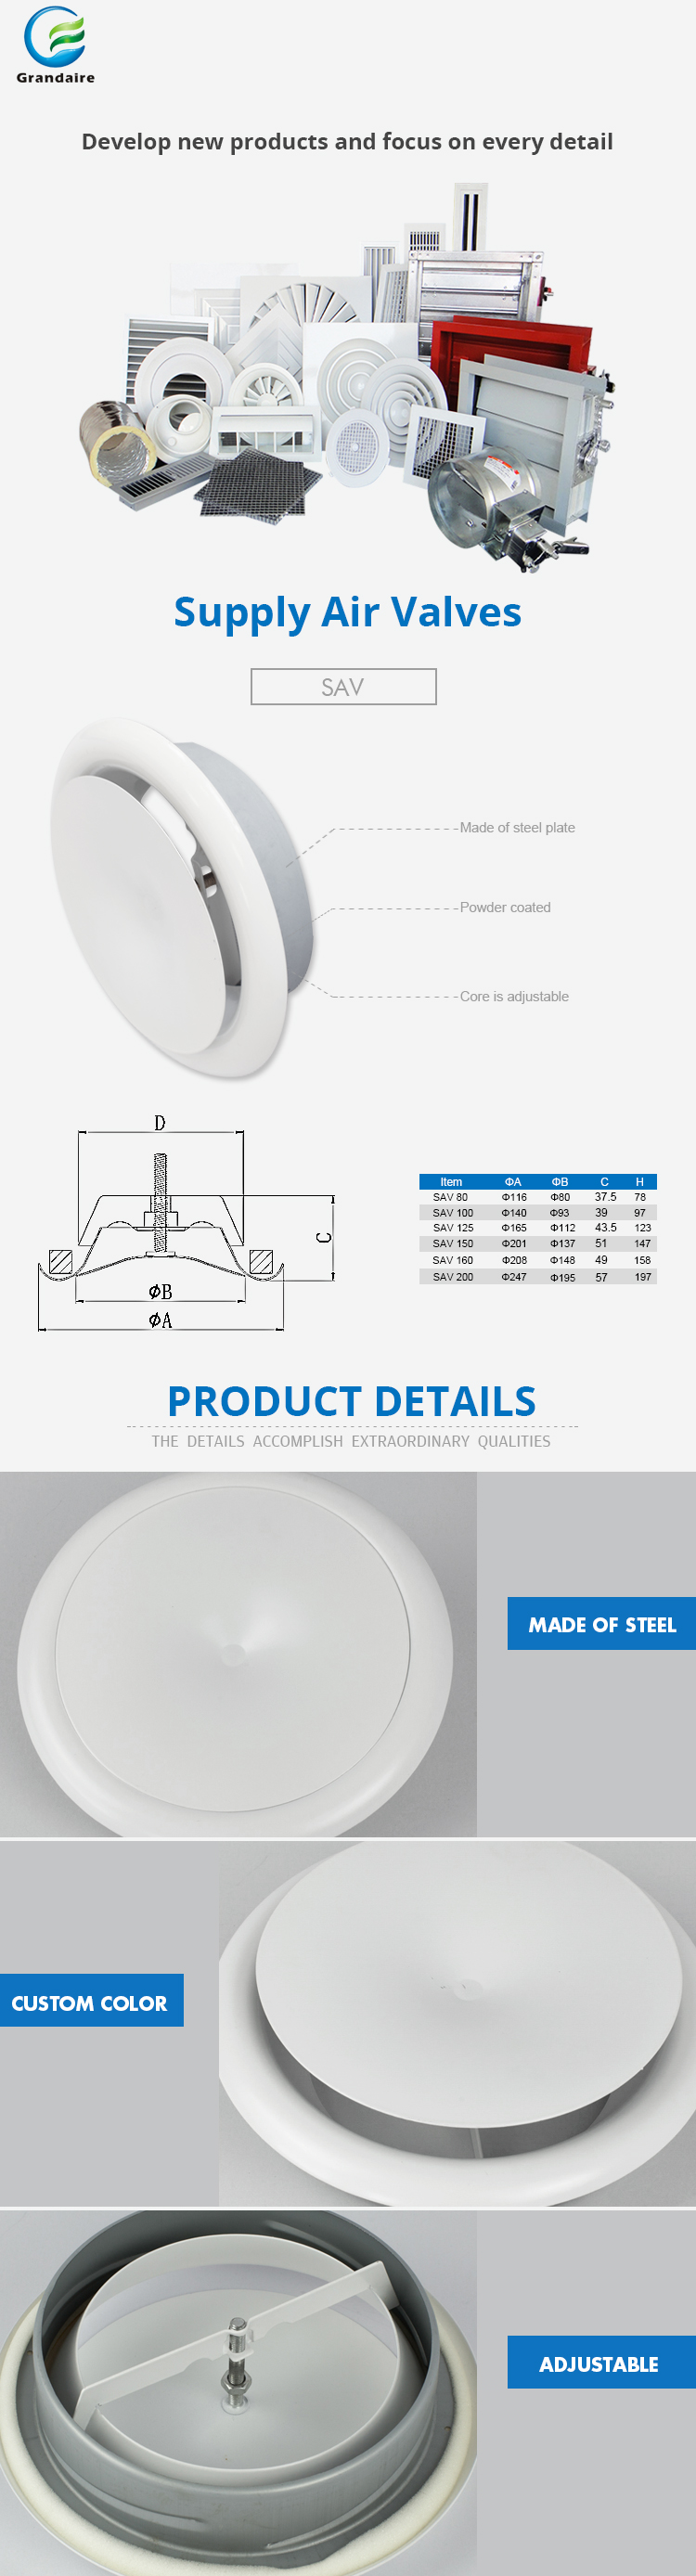 HVAC System Air Duct Diffusers Wall Air Supply Valves with Adjustable Core in White Color